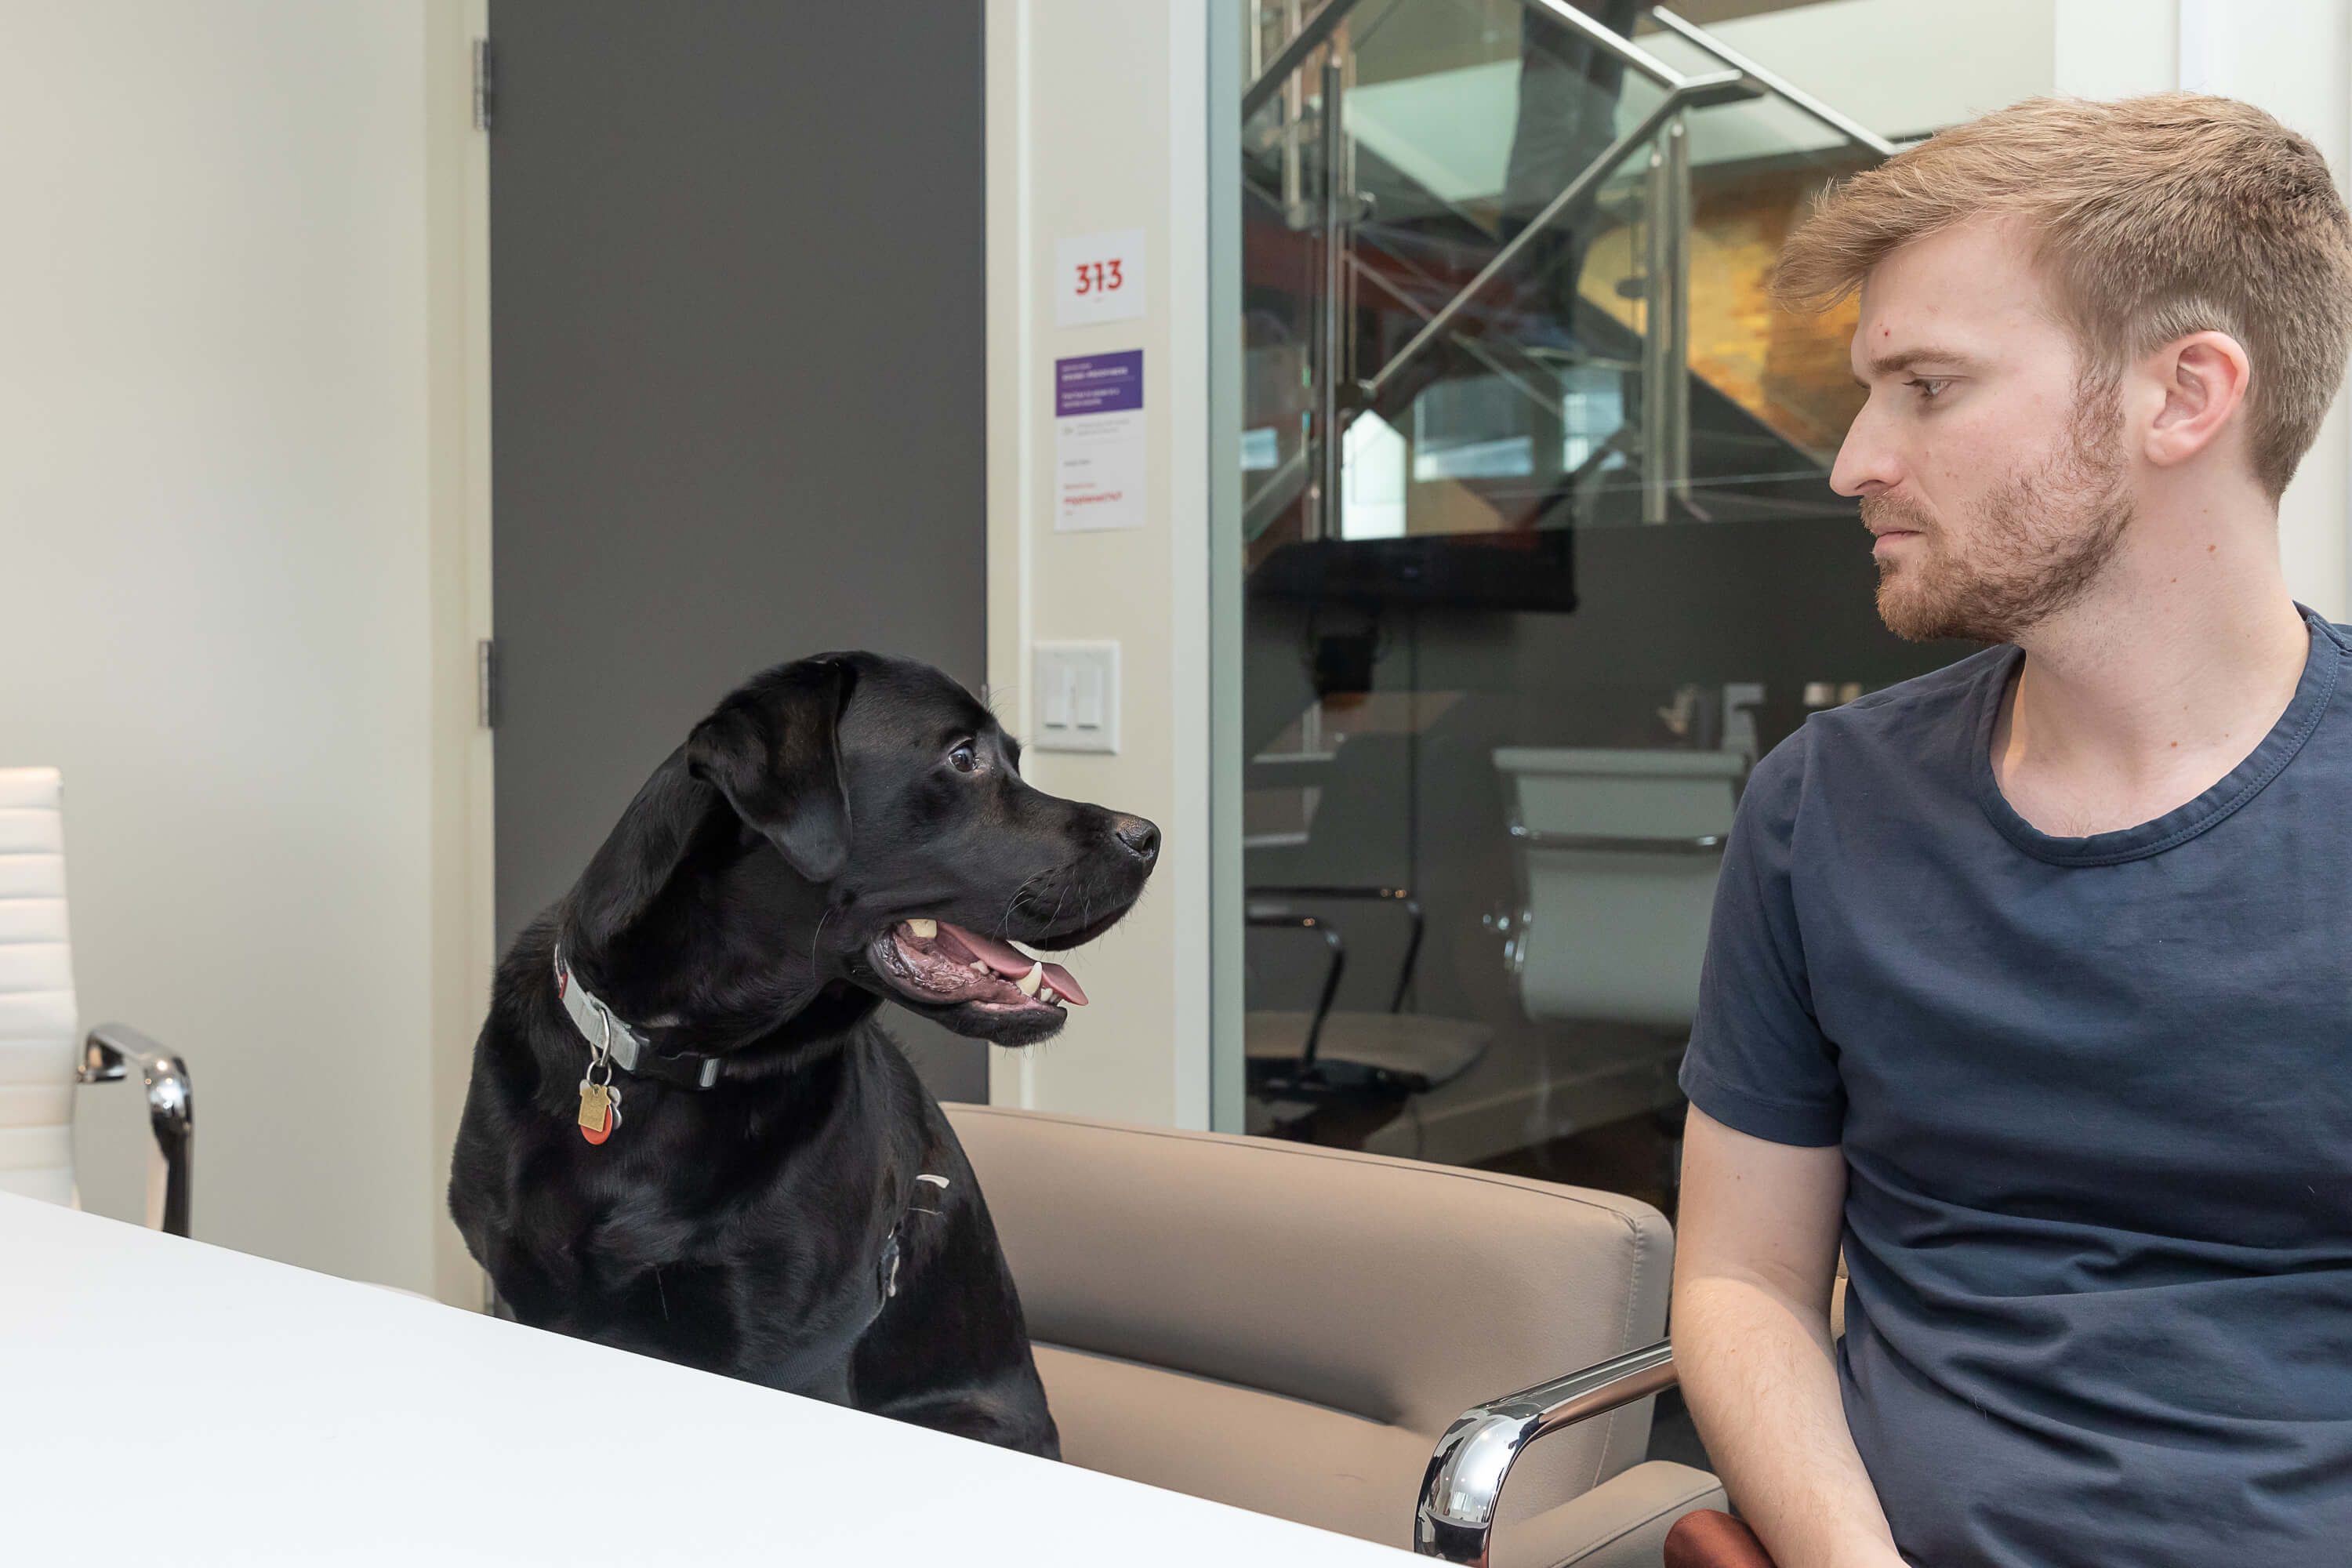 black lab and person in conference room